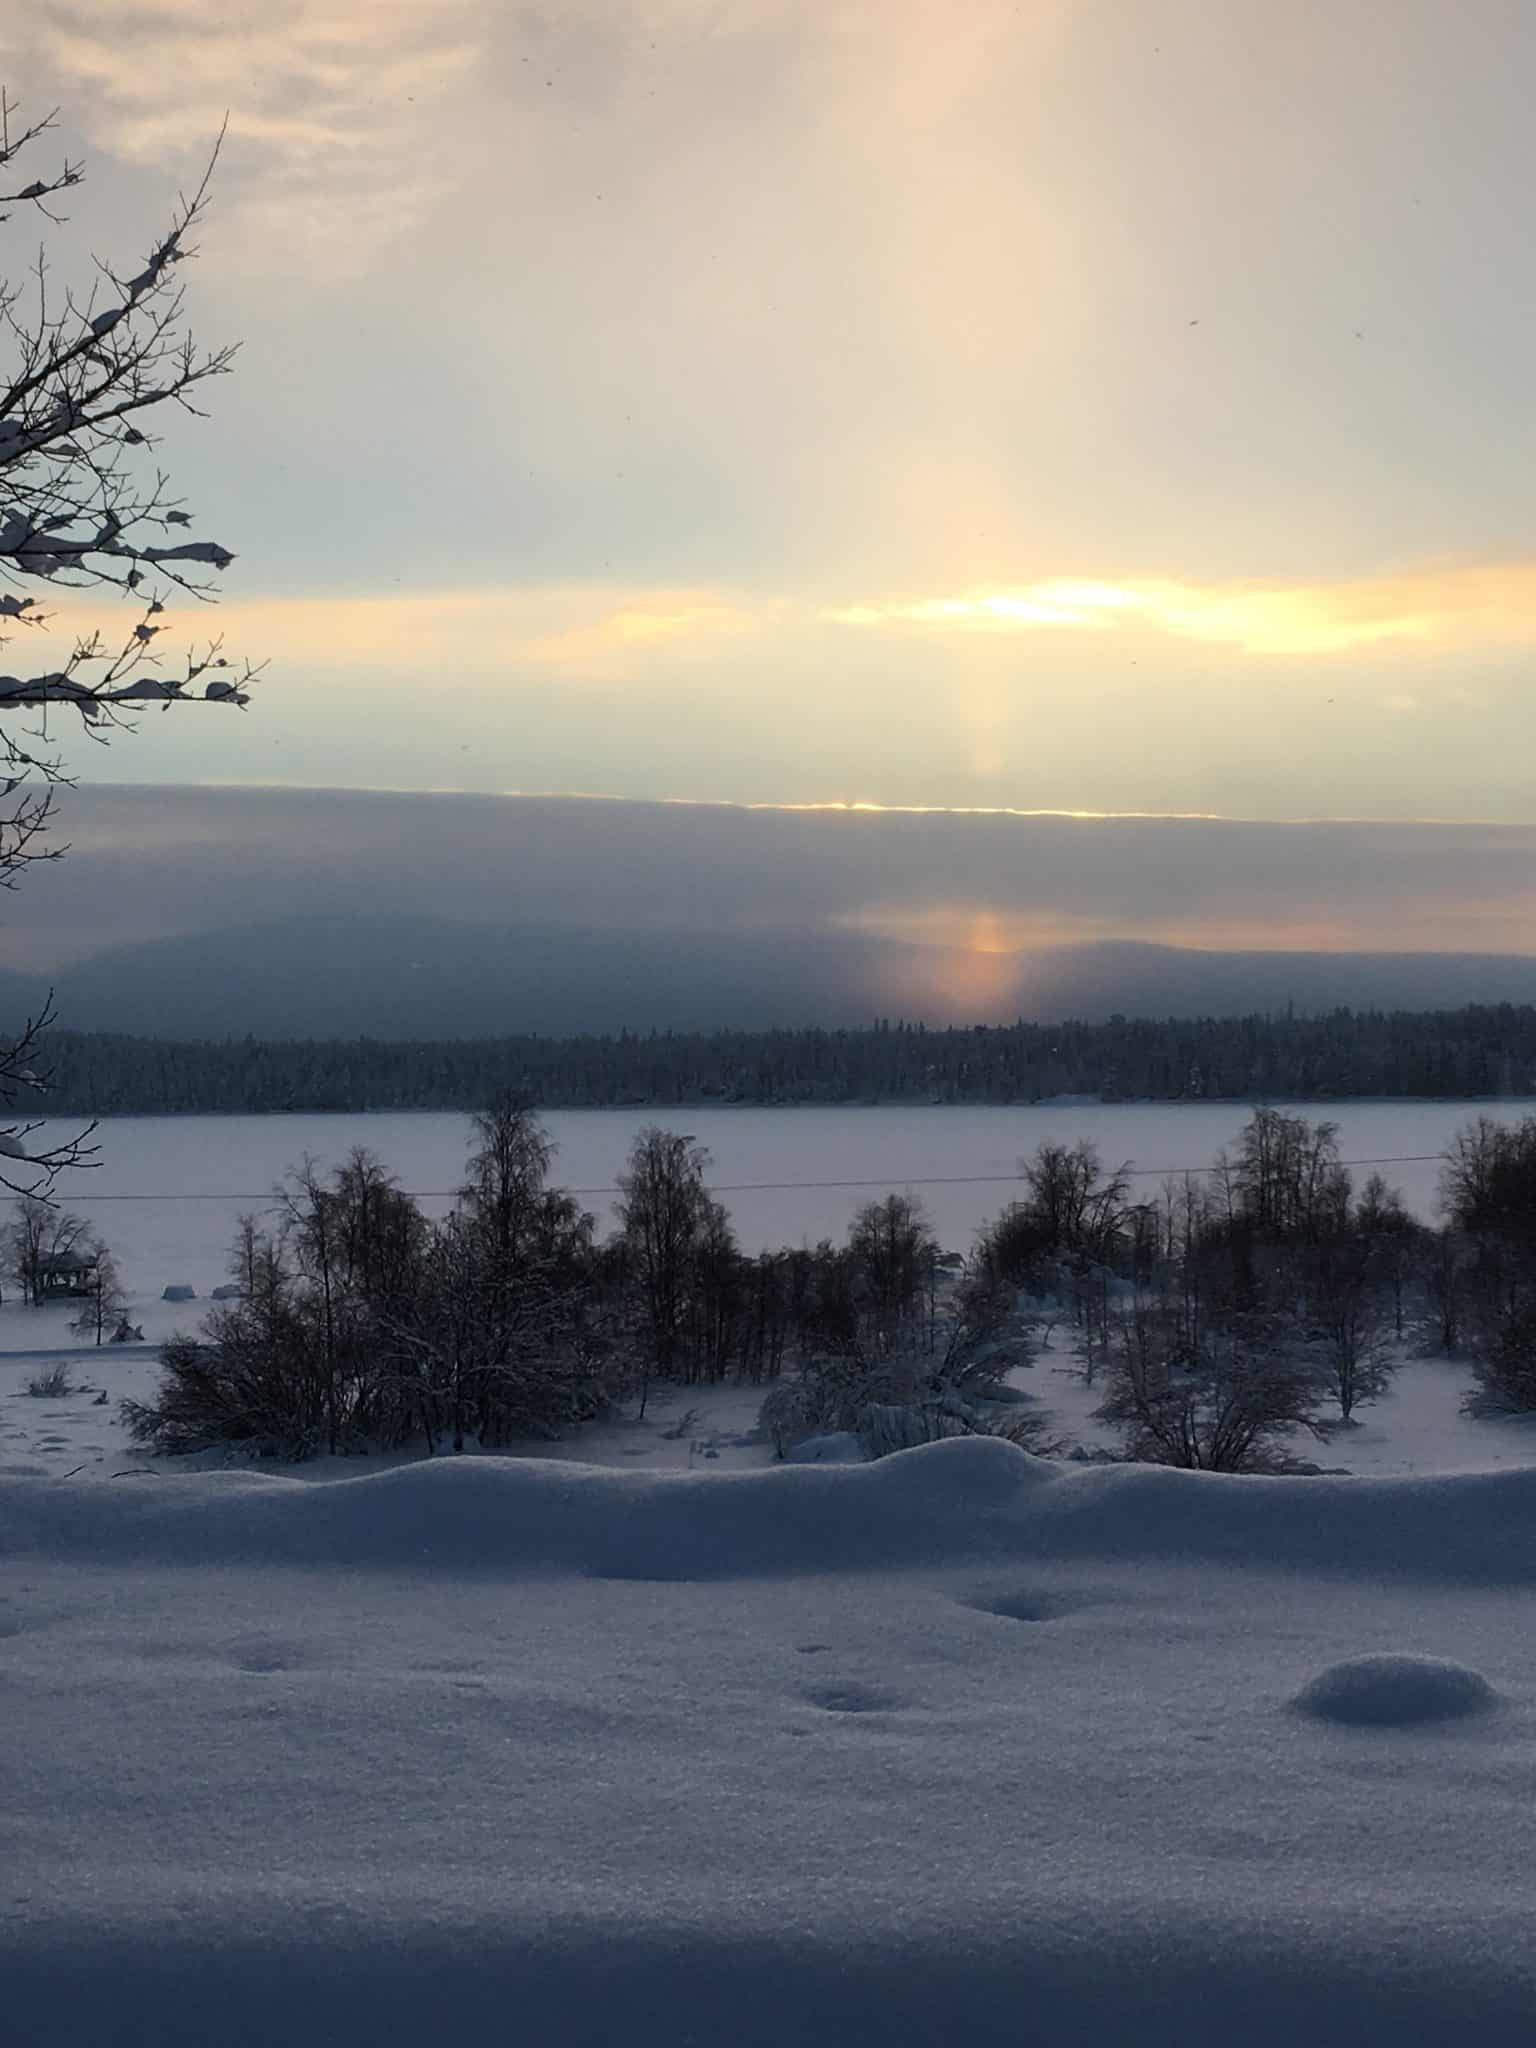 lapland-magical-snowy-winter-scene